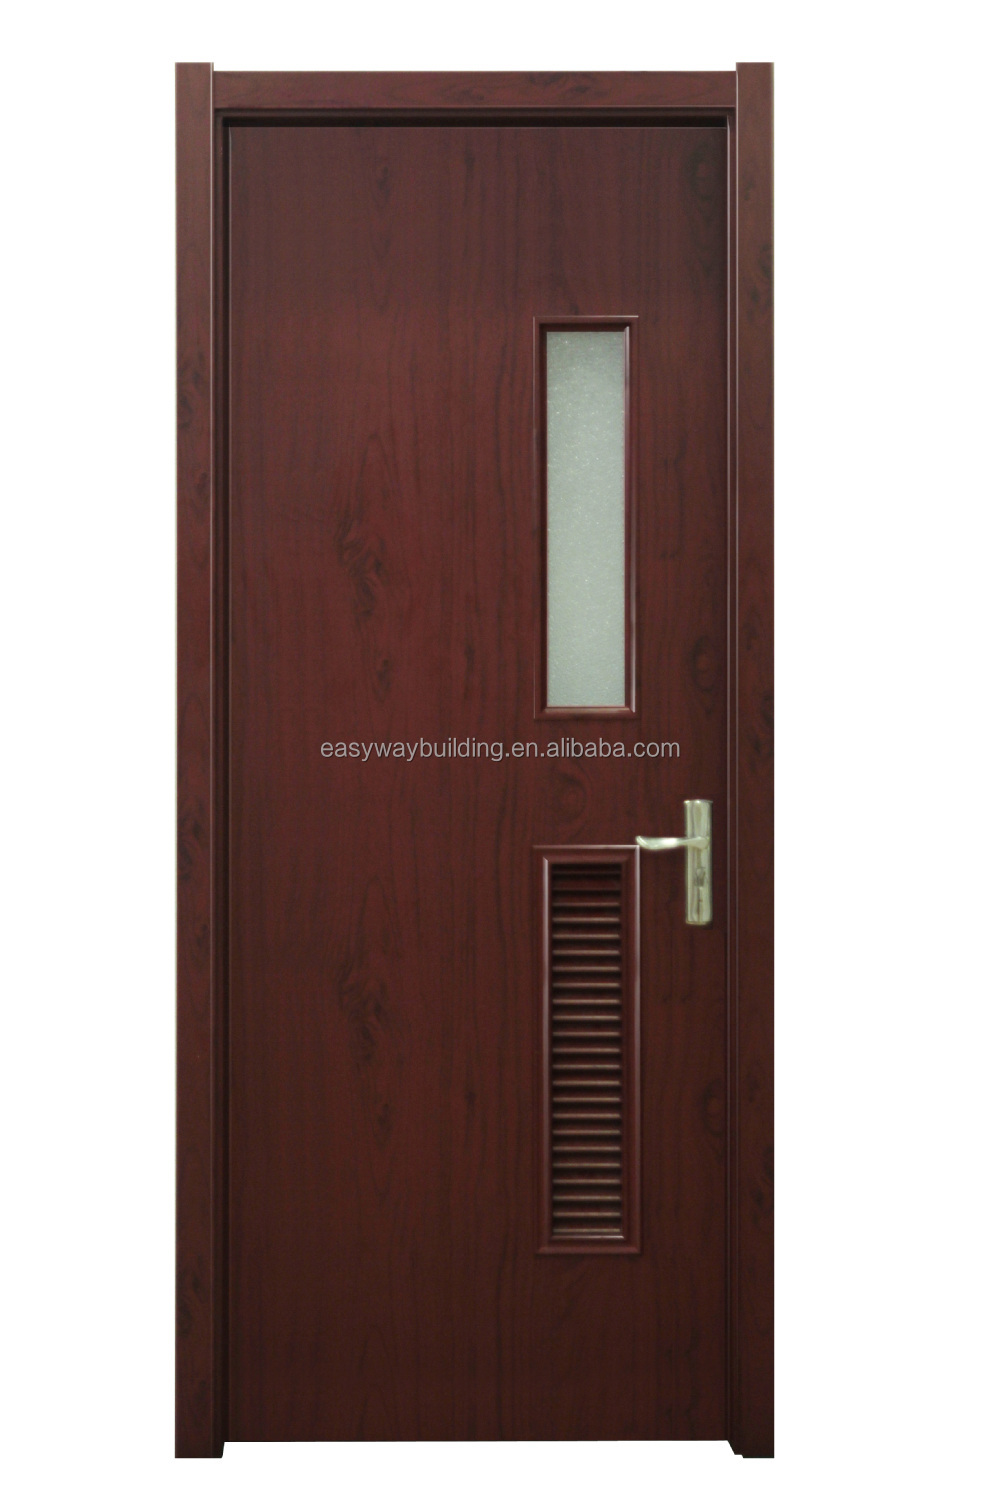 Laminated Flush Louver Doors Frosted Glass Bathroom Door Buy